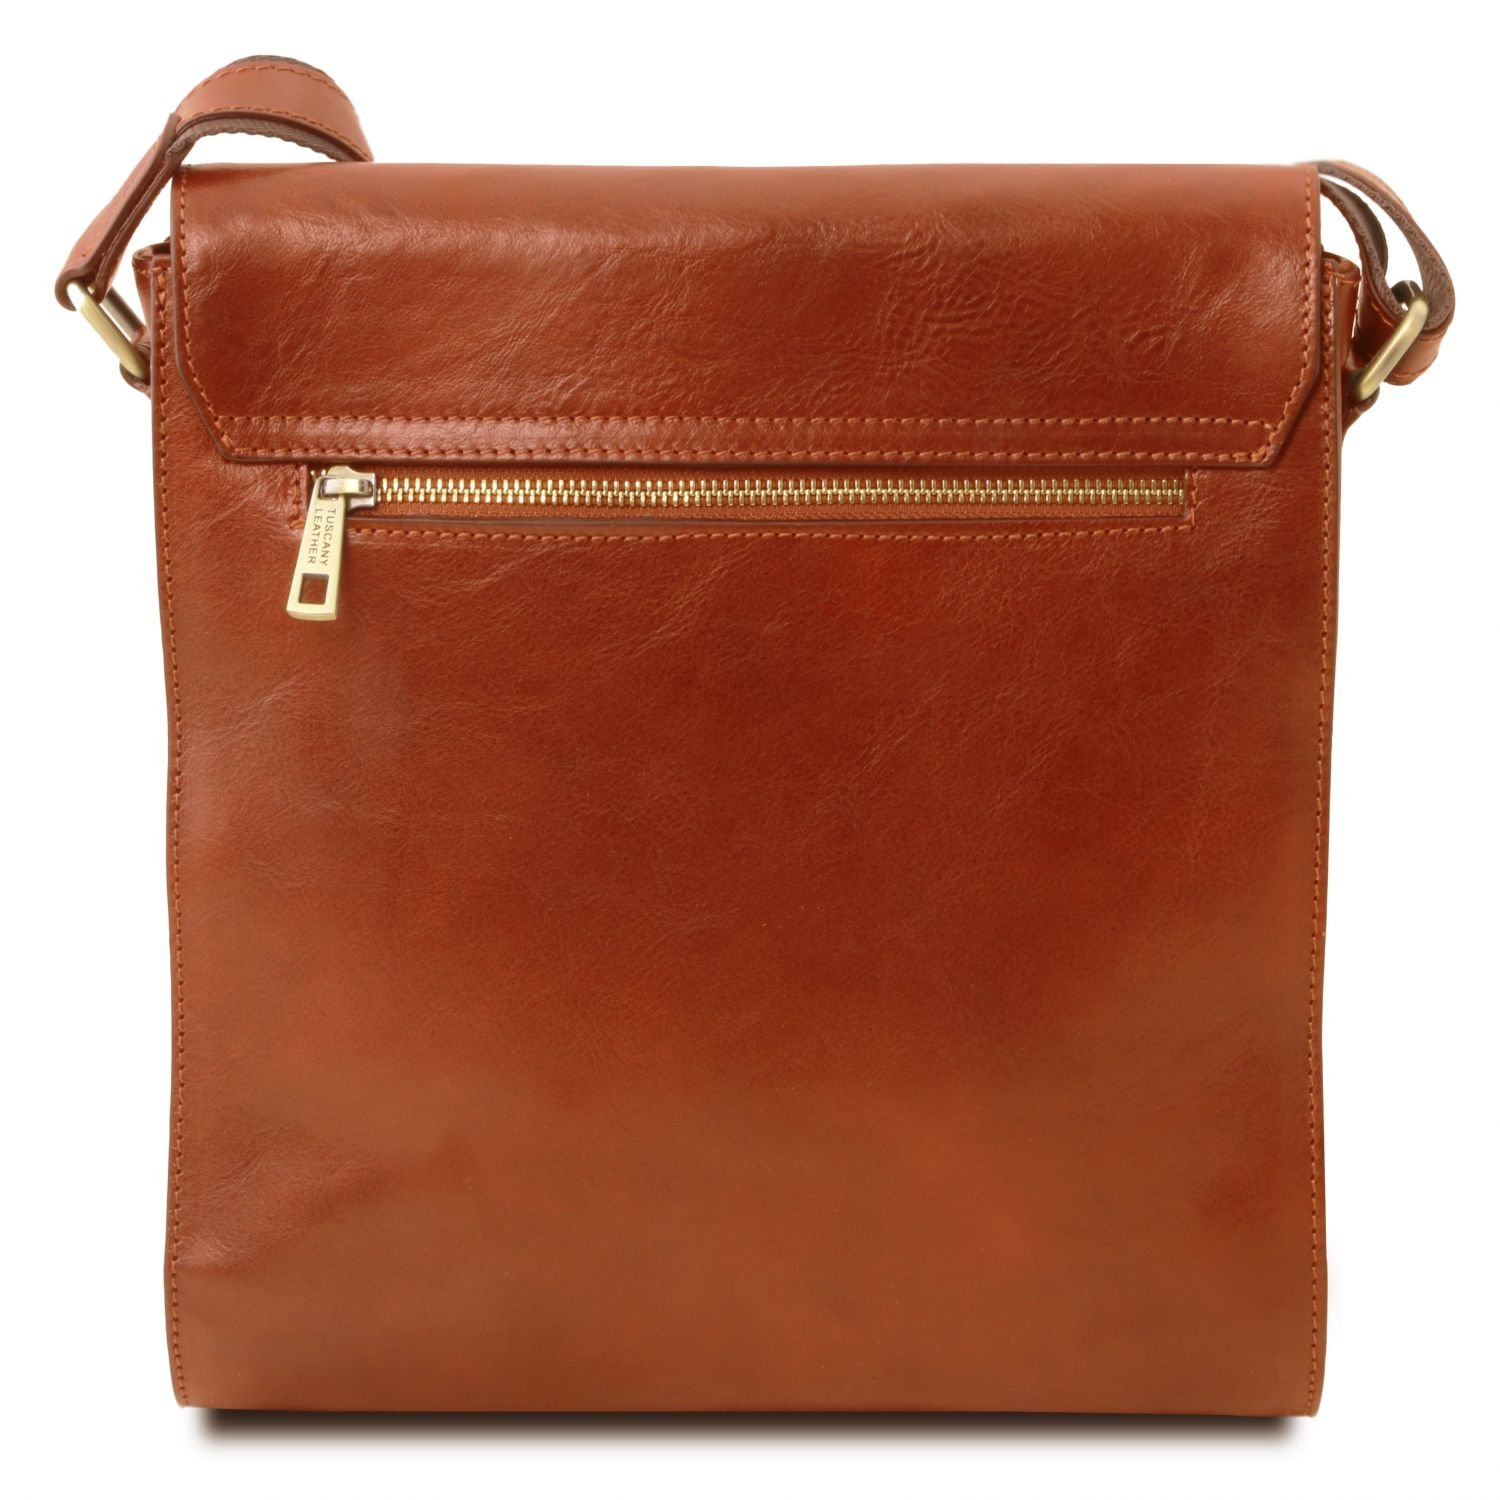 Tuscany Leather Oliver Leather crossbody bag for men with front pocket Honey by Tuscany Leather (Image #4)